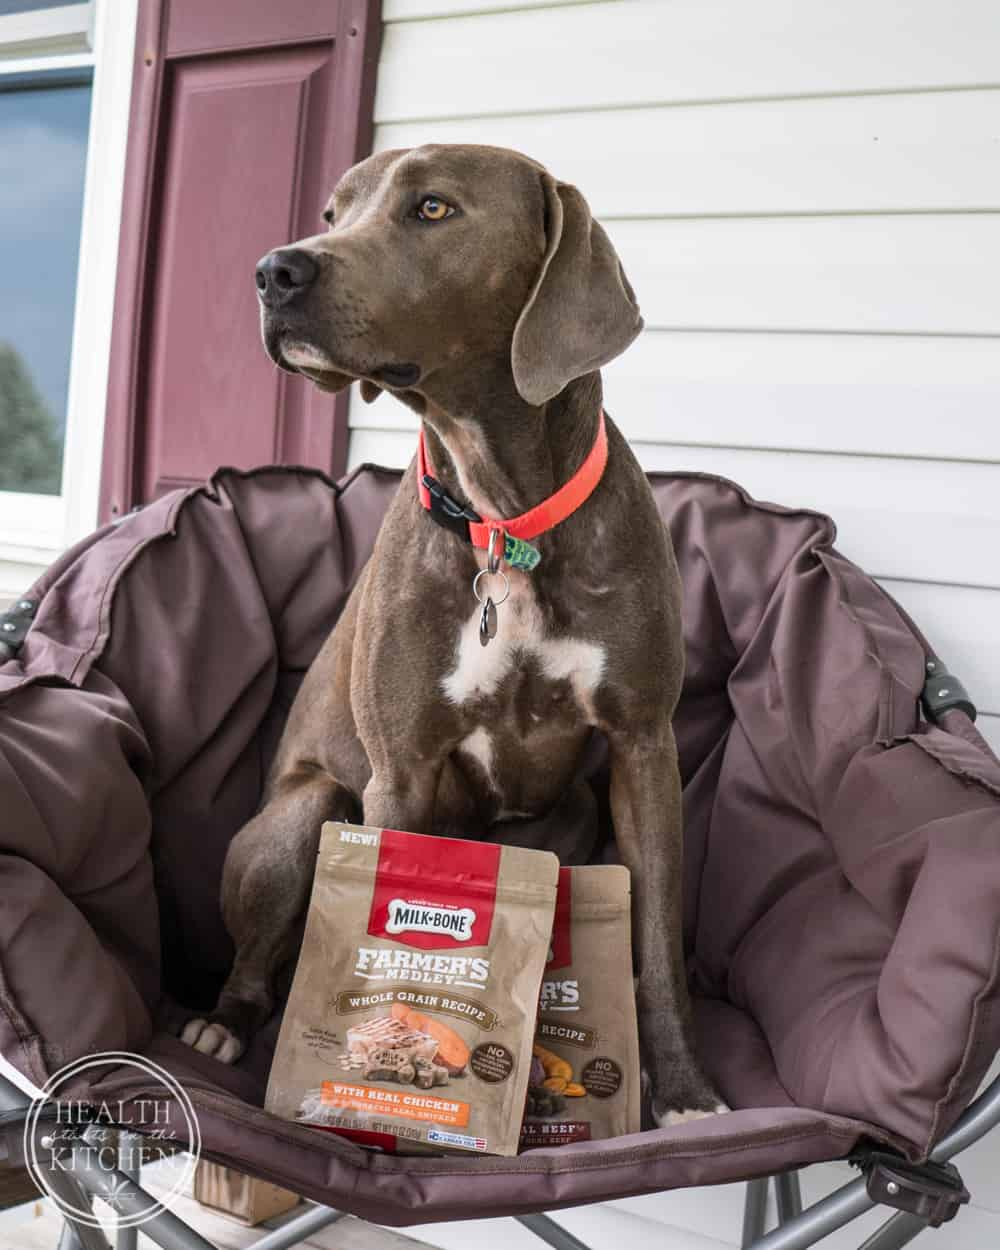 Pampering your Pooch with Milk-Bone Farmer's Medley Dog Treats